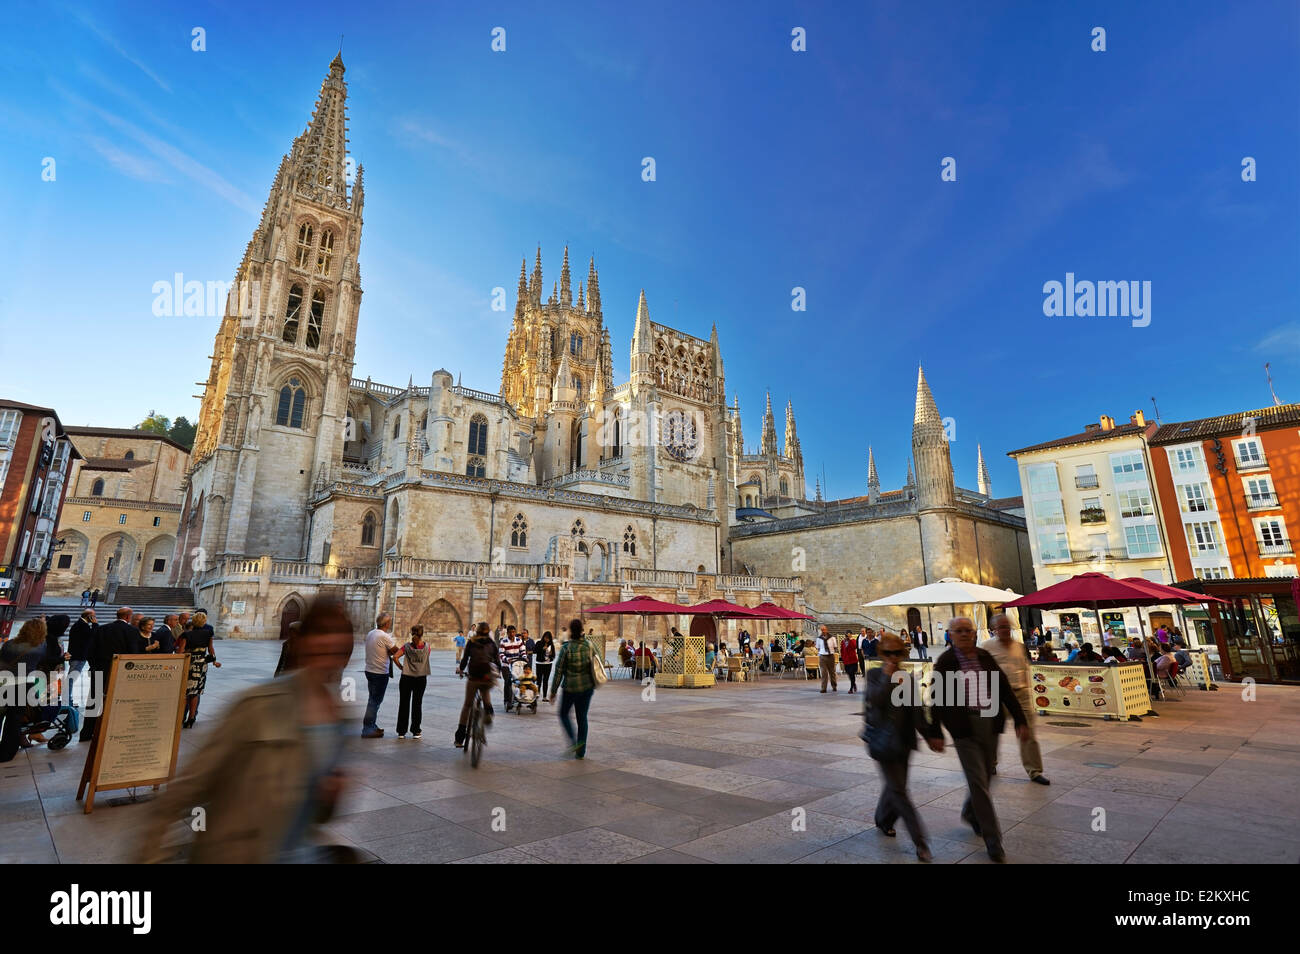 Cathedral of Saint Mary of Burgos. San Fernando square. Castile and Leon. Spain - Stock Image